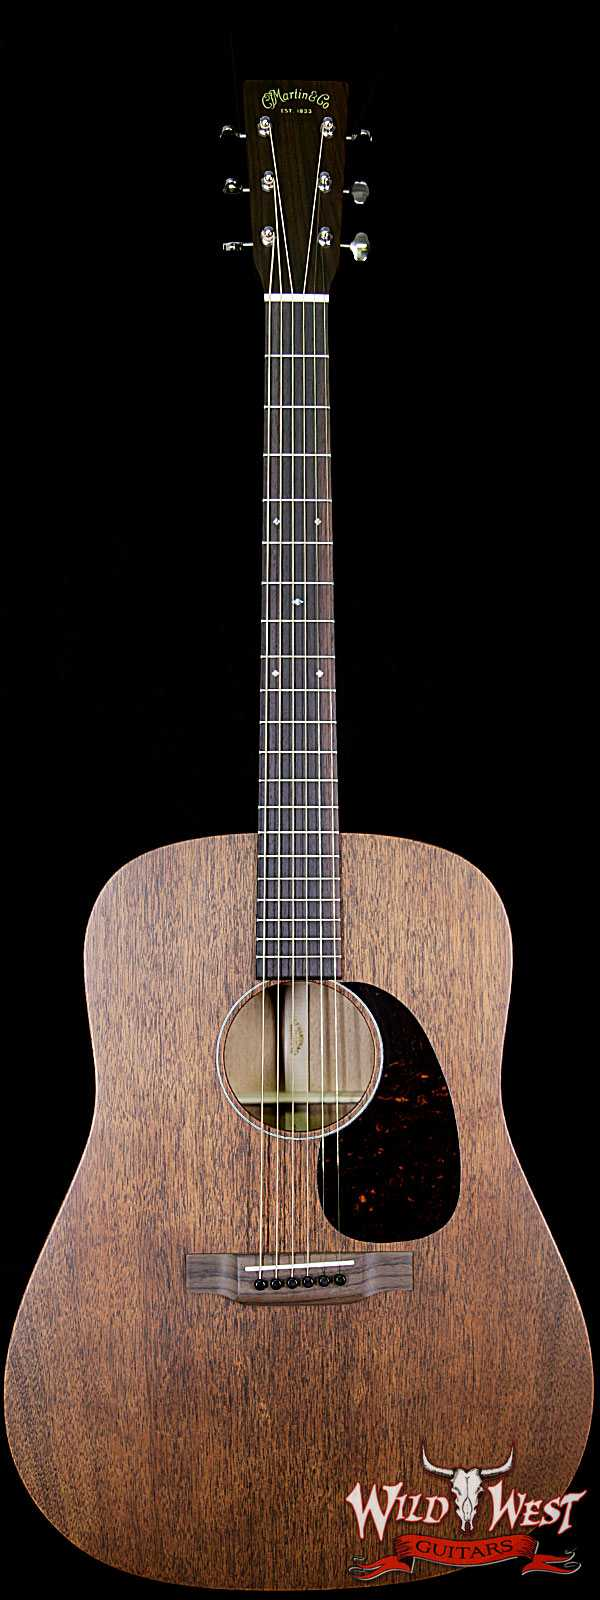 Martin USA 15 Series D-15M Dreadnought Acoustic Guitar Mahogany Natural